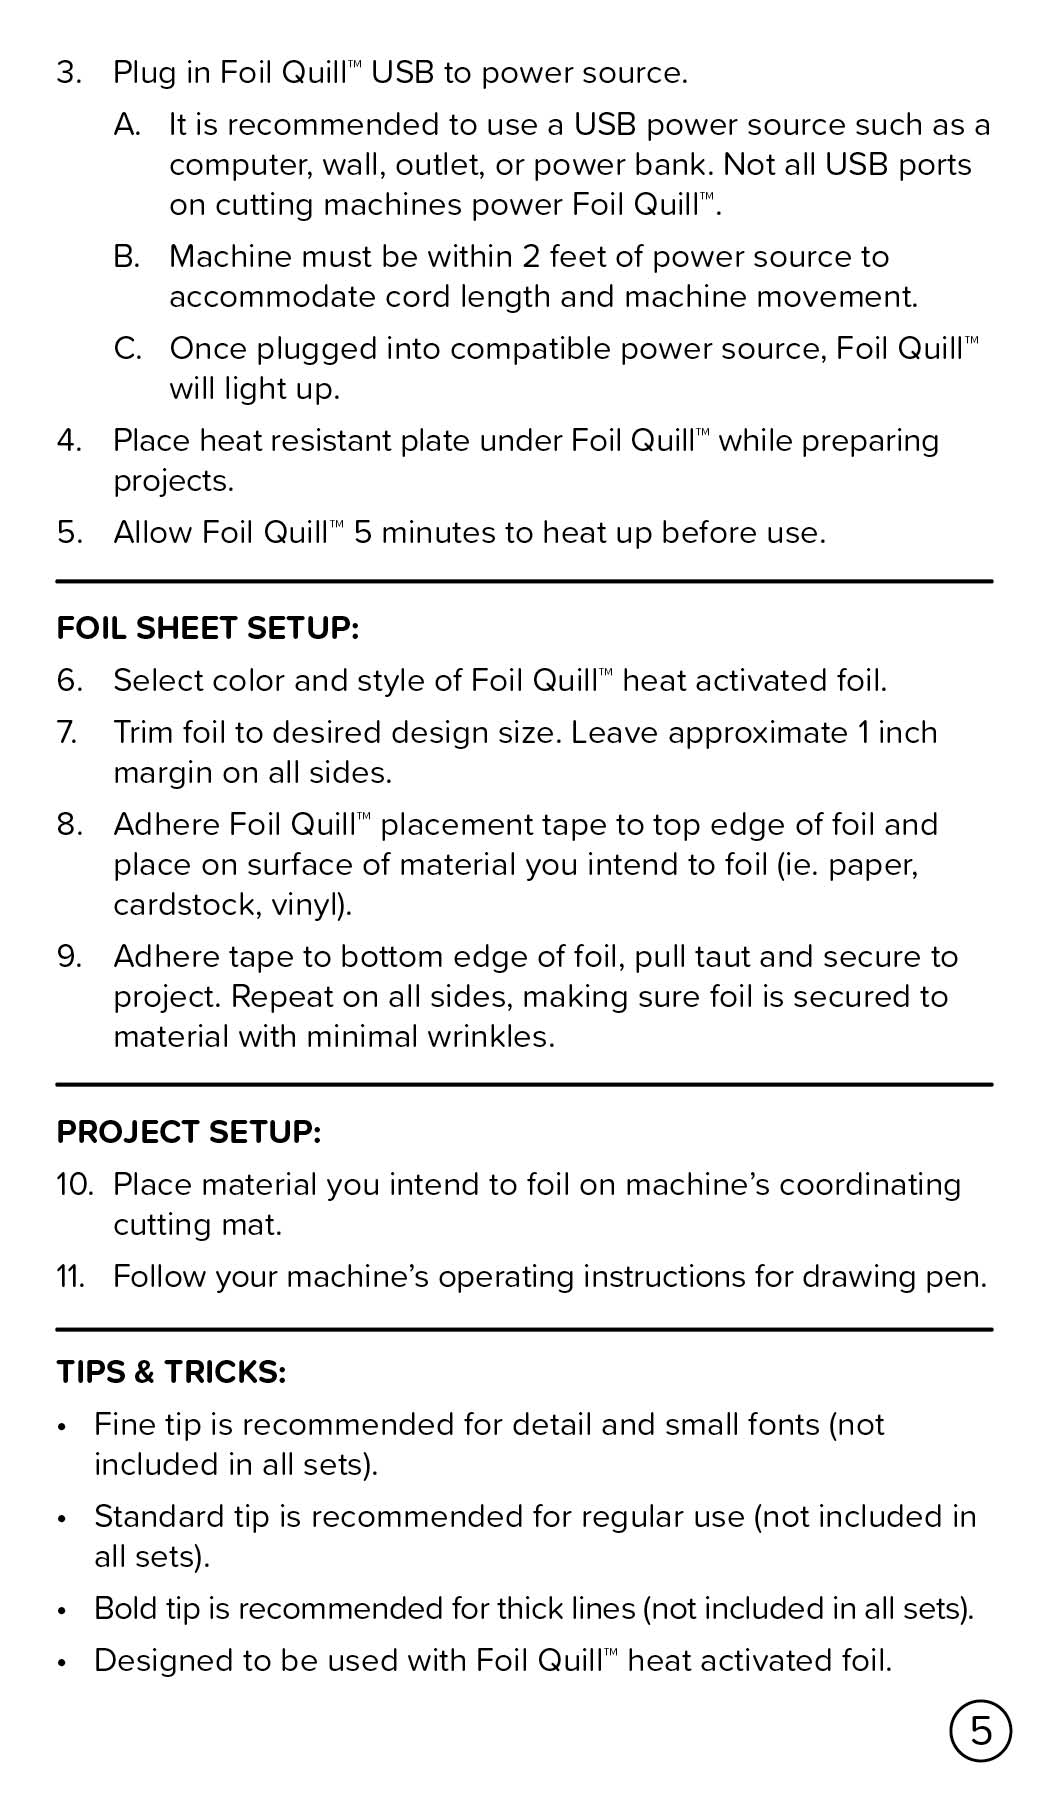 WR_FoilQuill_Instructions_05